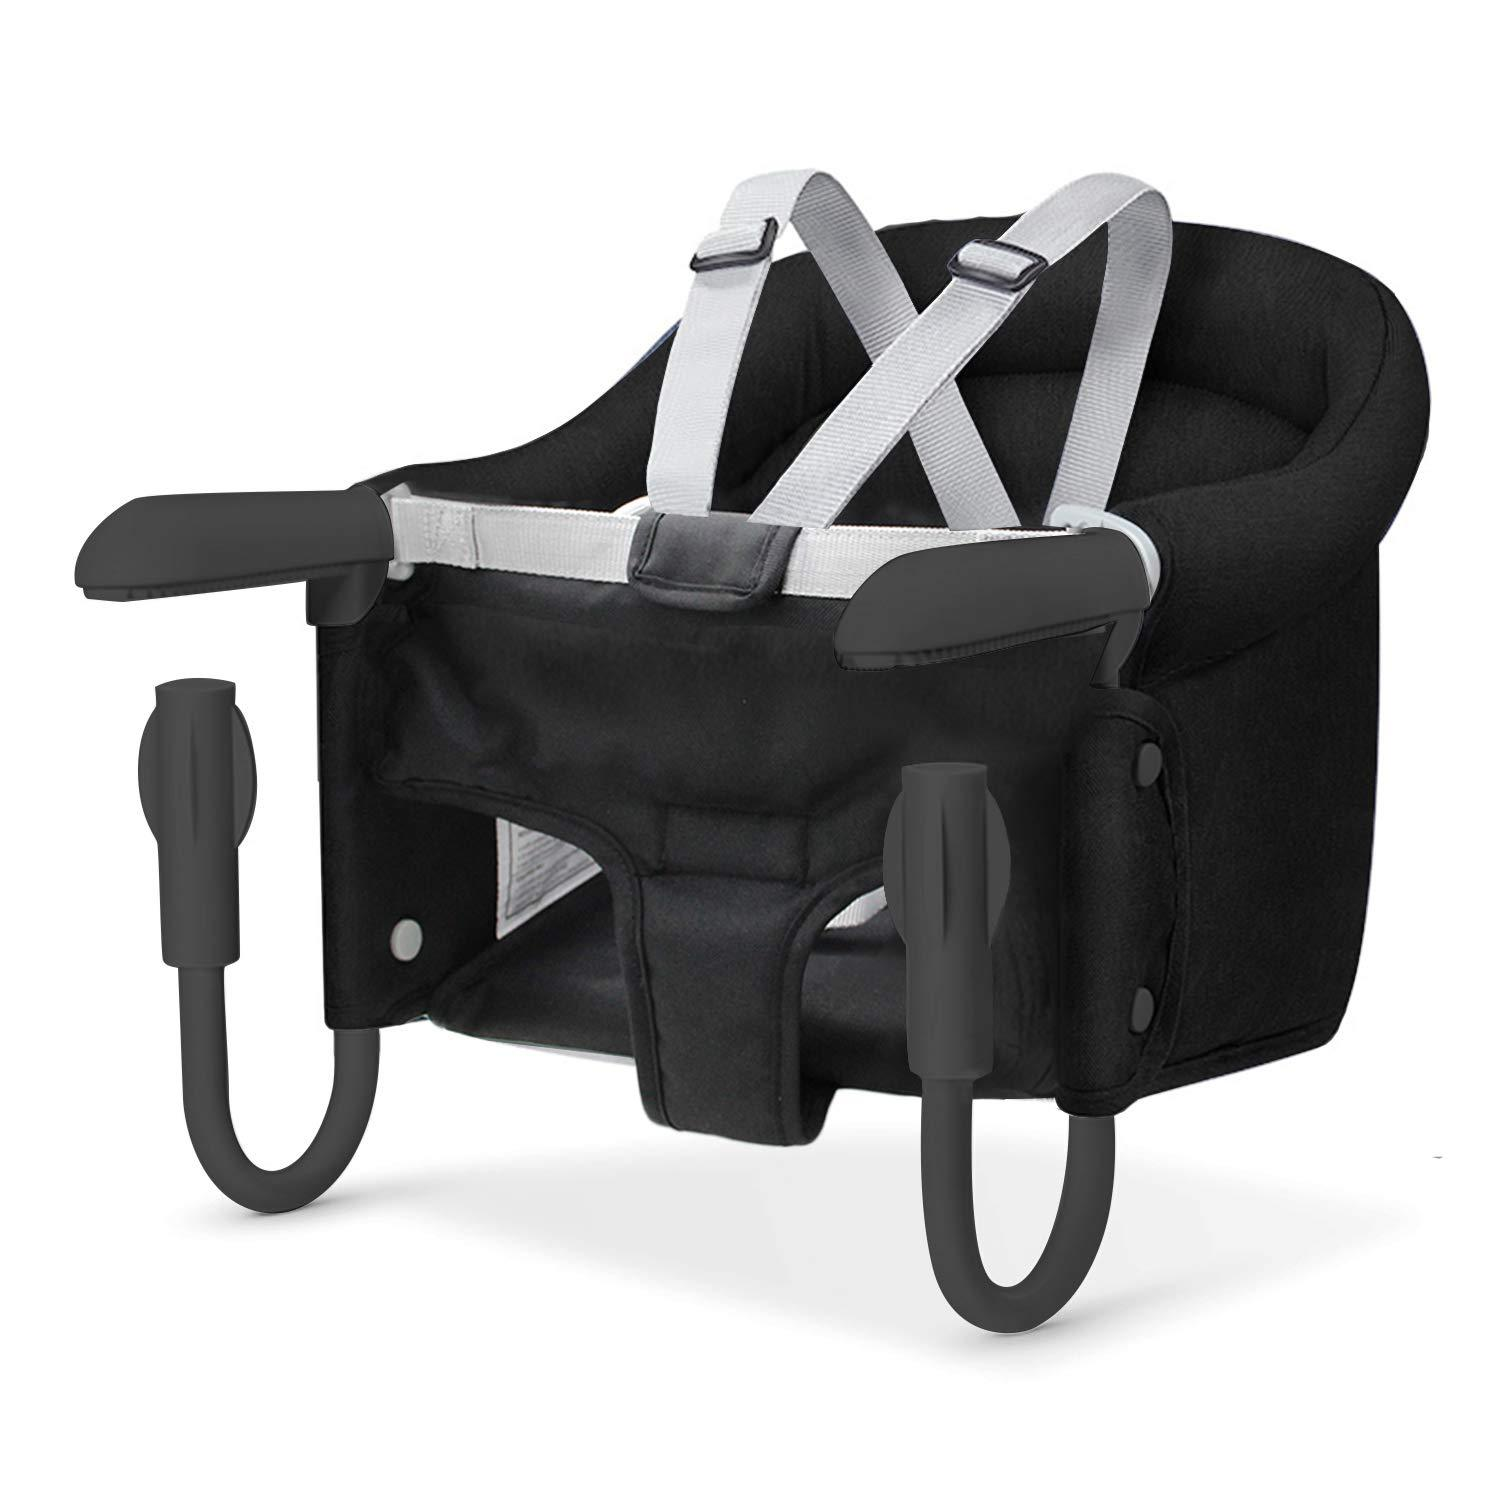 Hook On High Chair, Portable Baby Clip on Table High Chair, Space Saver High Chair Black by TCBunny